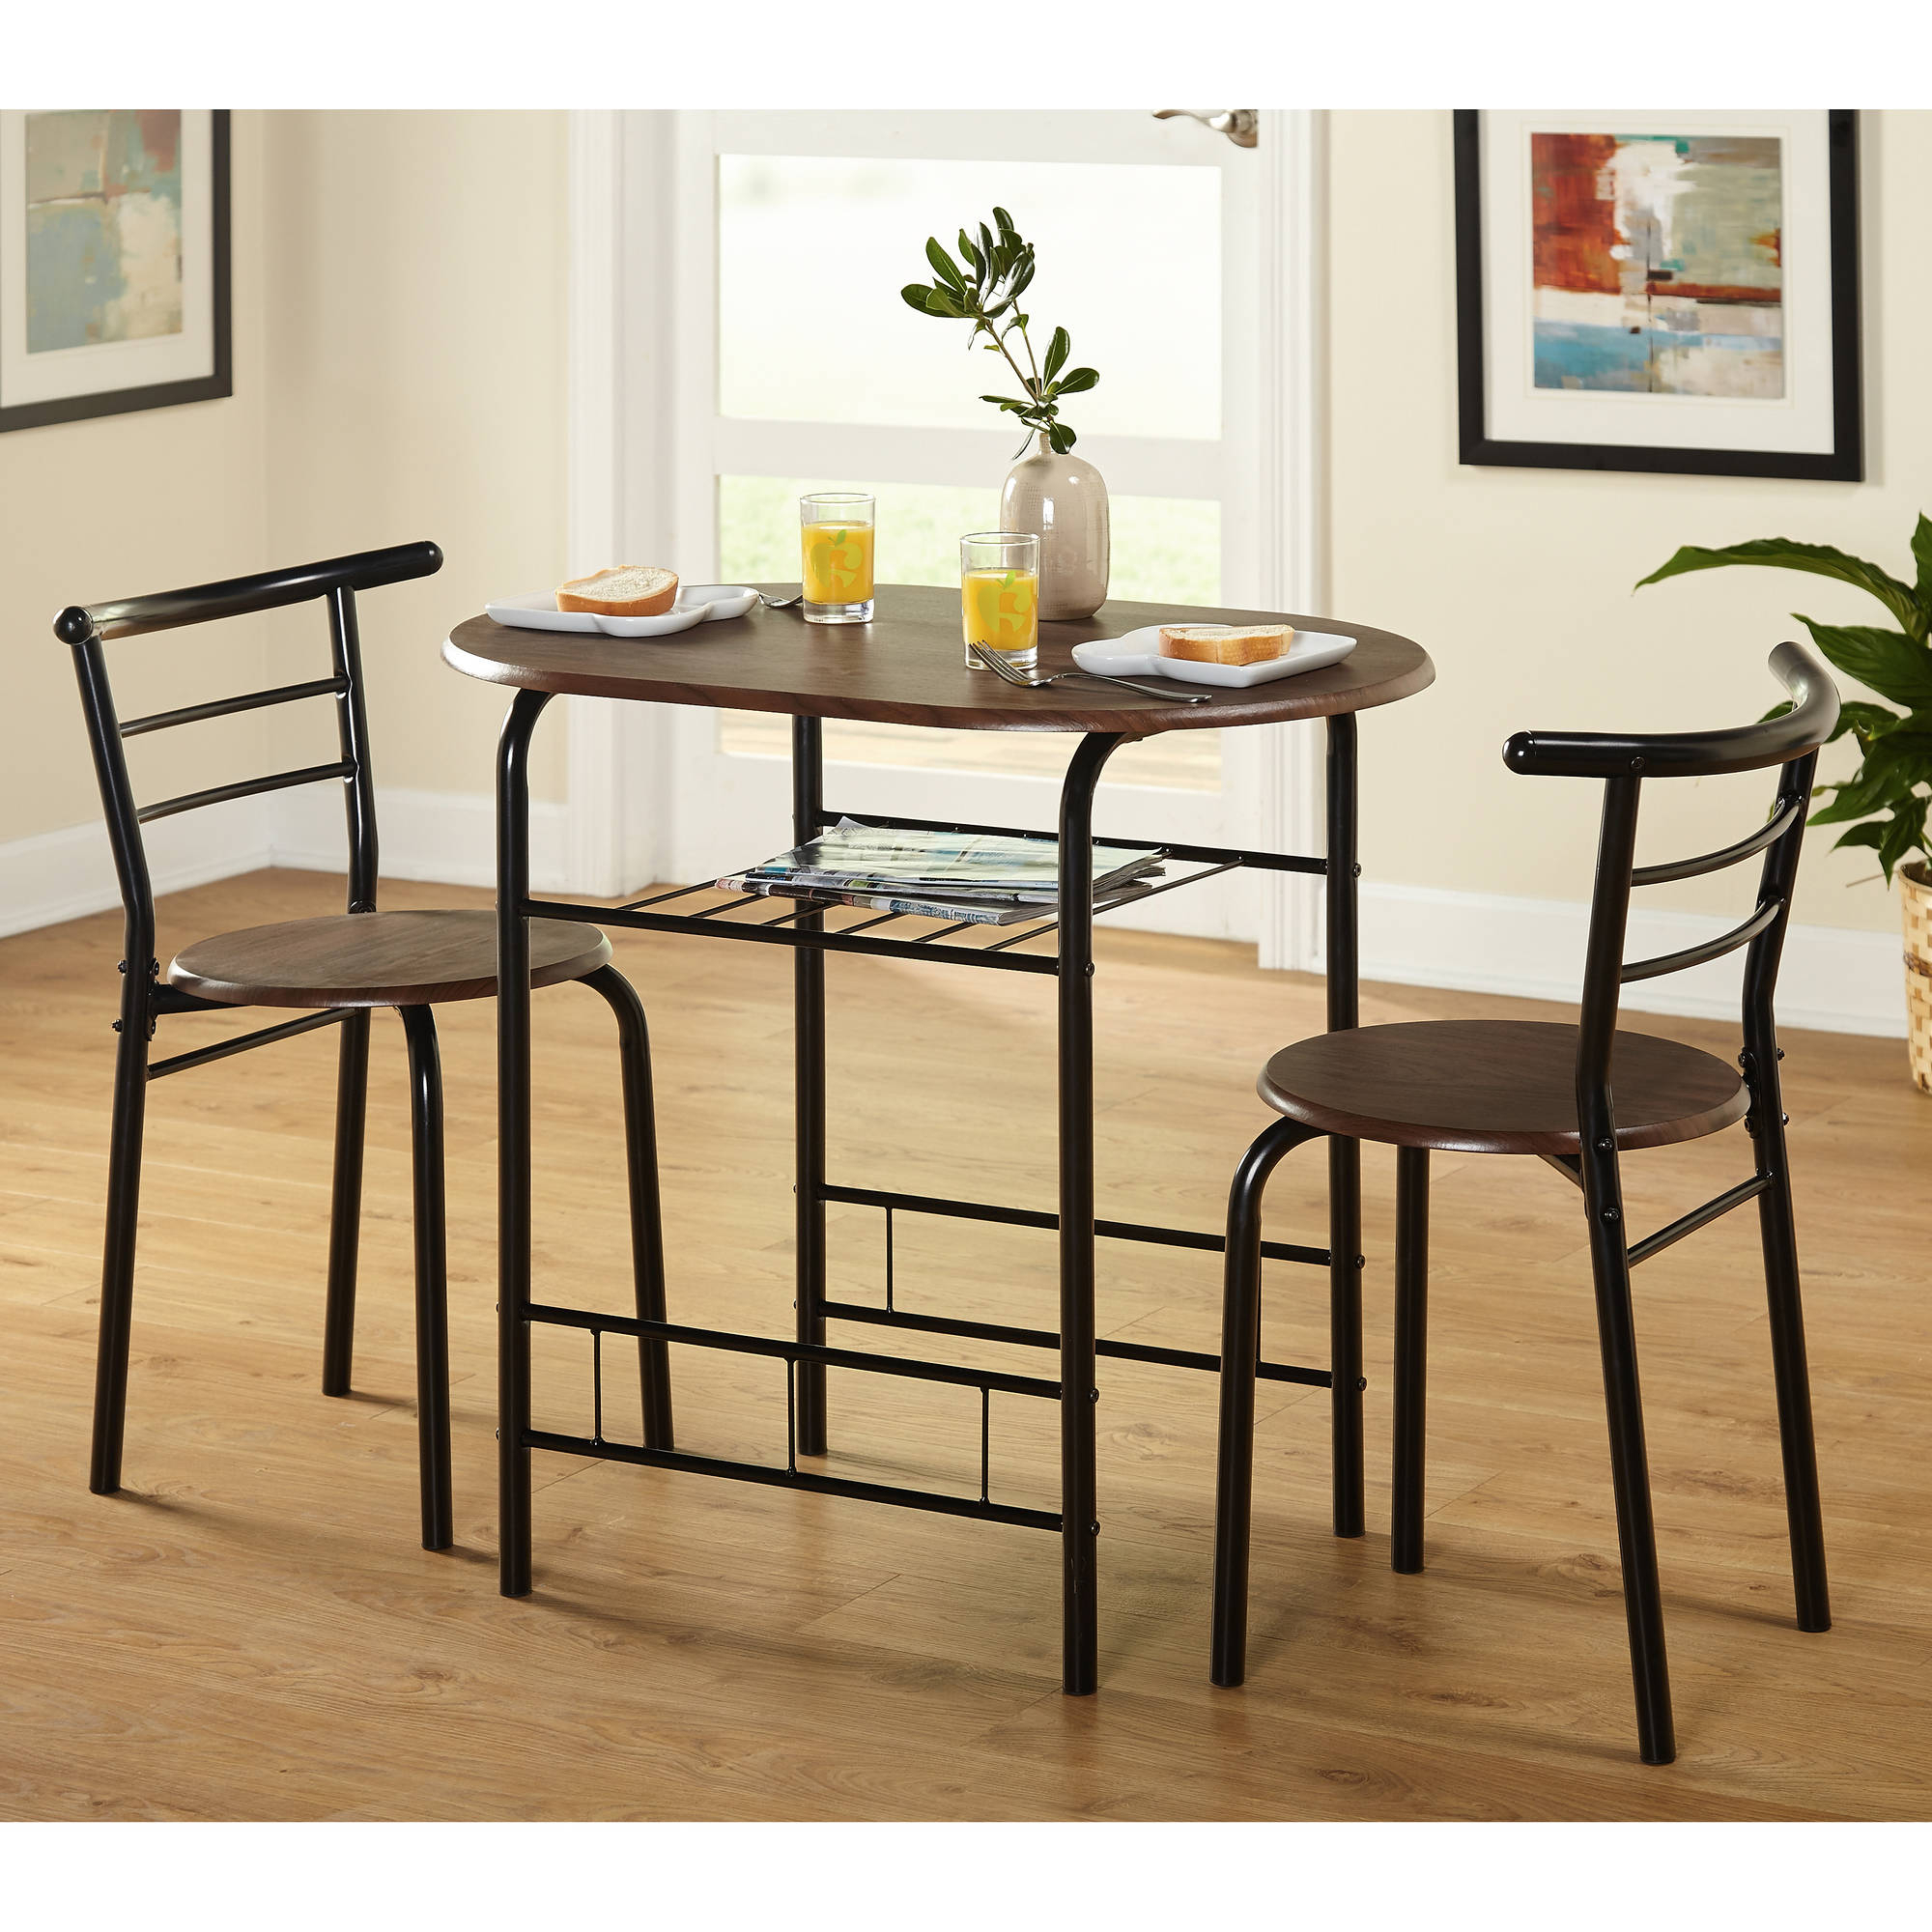 3 Piece Dining Sets Pertaining To Newest Tms 3 Piece Bistro Dining Set (Gallery 10 of 20)